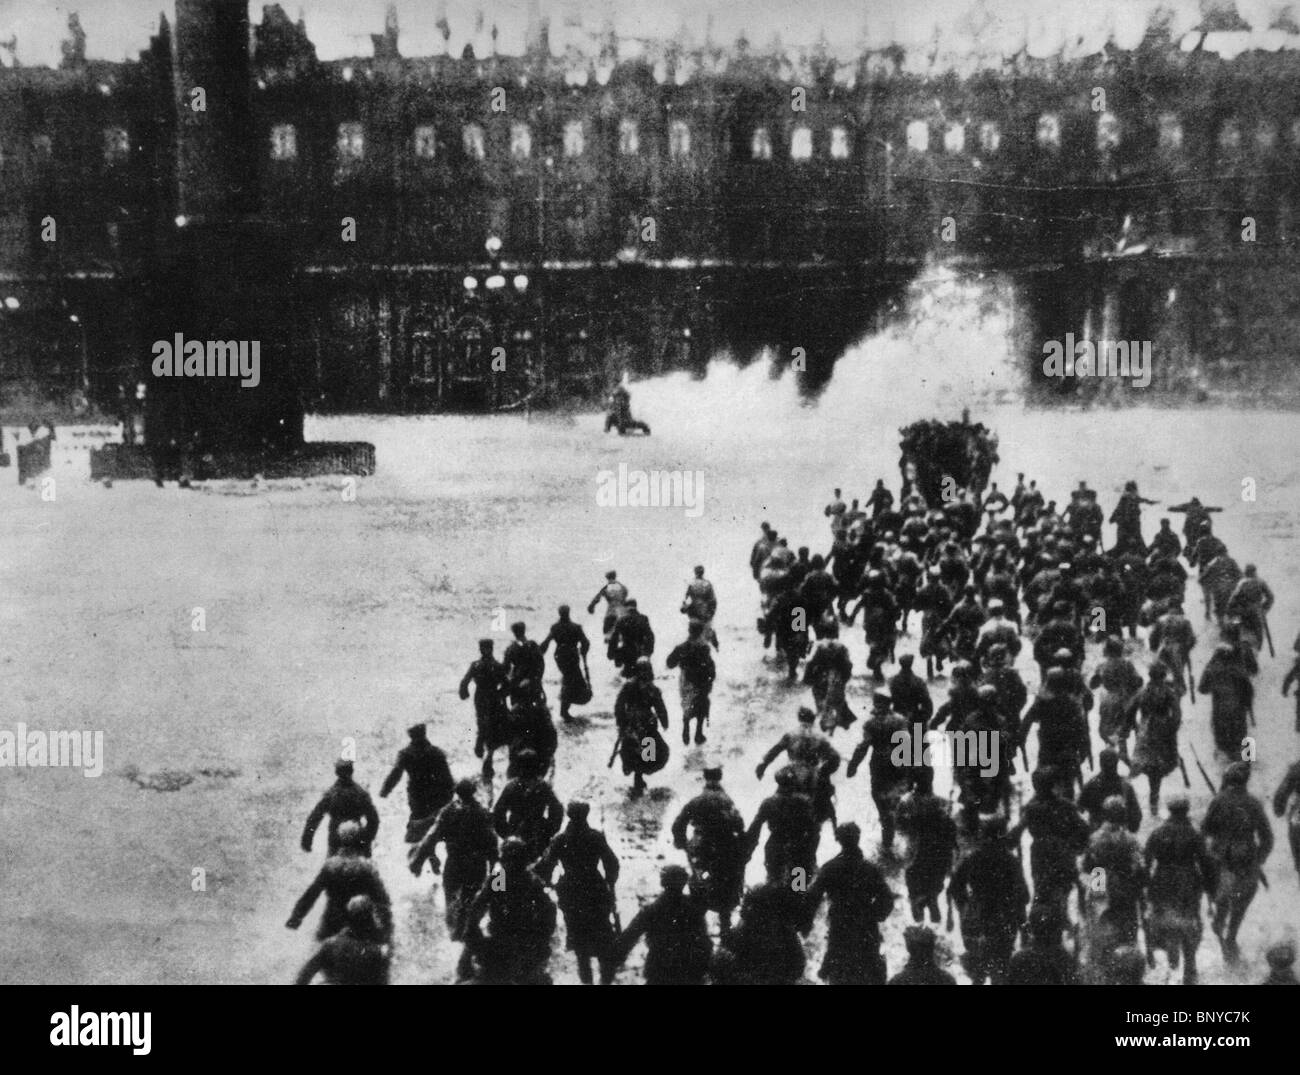 OCTOBER  1927 film directed by Sergei Eisenstein shows the storming of the Winter Palace in St Petersburg on October 25-26 1917 Stock Photo